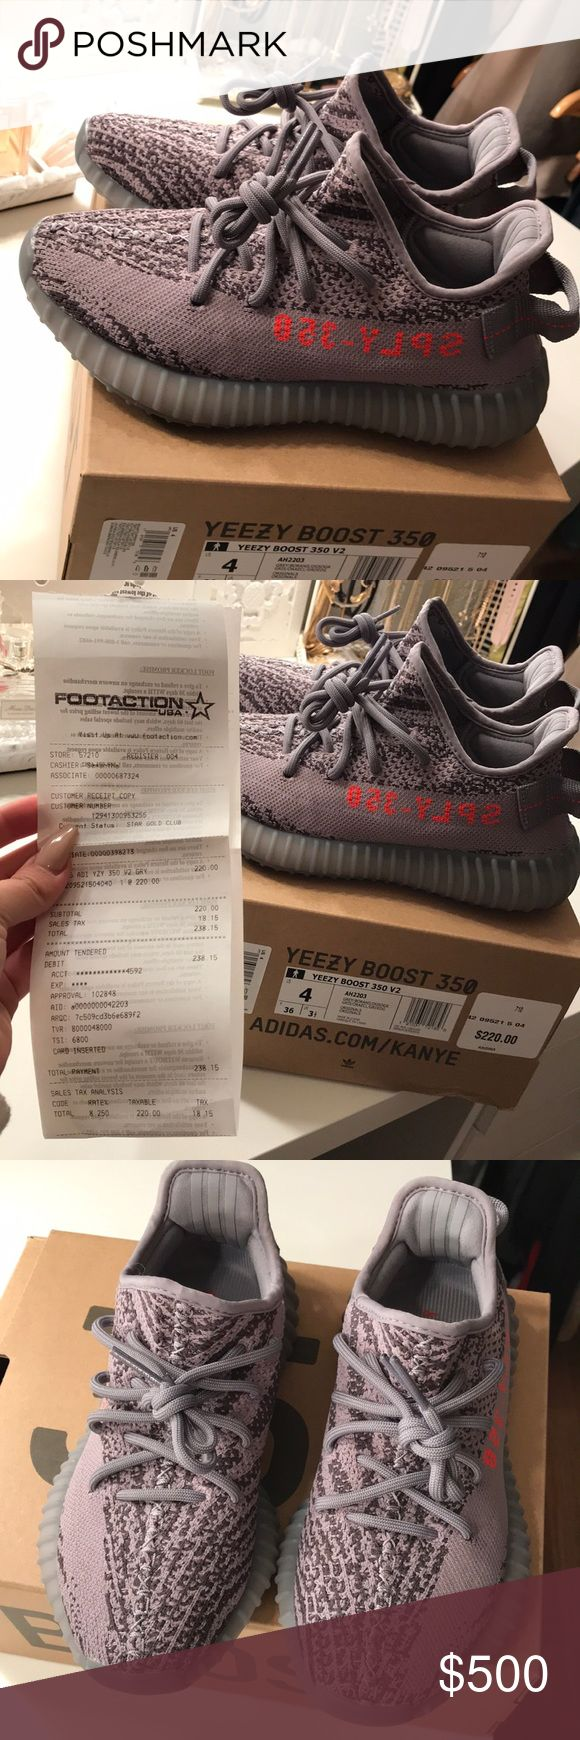 Beluga's 2.0 Yeezy's 100% authentic w/ proof of receipt! Size 4, women 5.5-6. PRICE IS FIRM. Yeezy Shoes